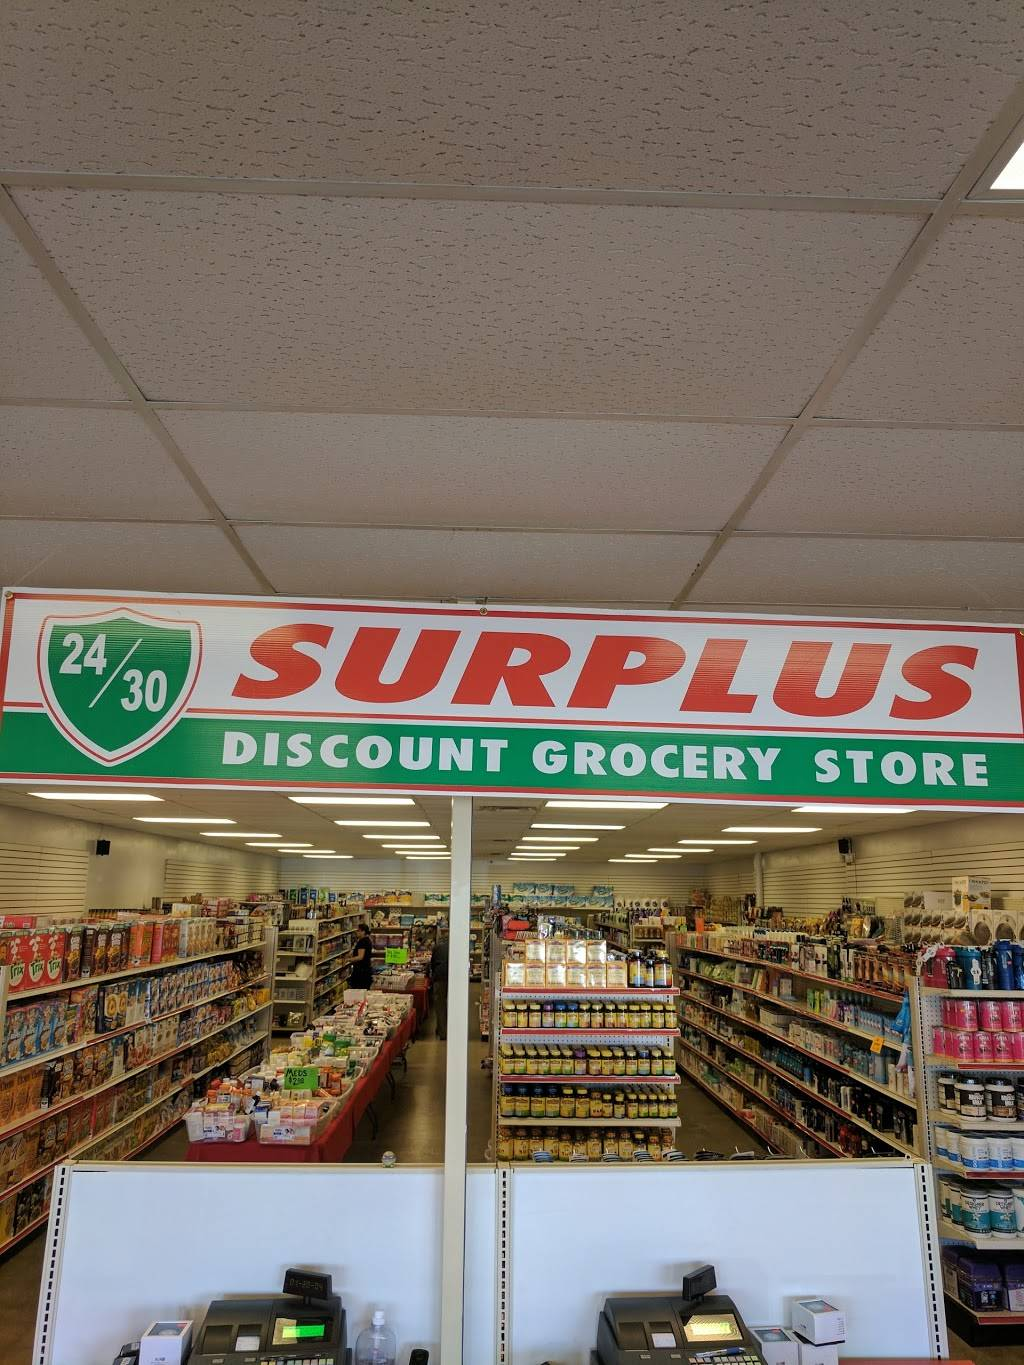 24/30 Surplus - store    Photo 5 of 20   Address: 6346 E State Blvd, Fort Wayne, IN 46815, USA   Phone: (260) 245-6067